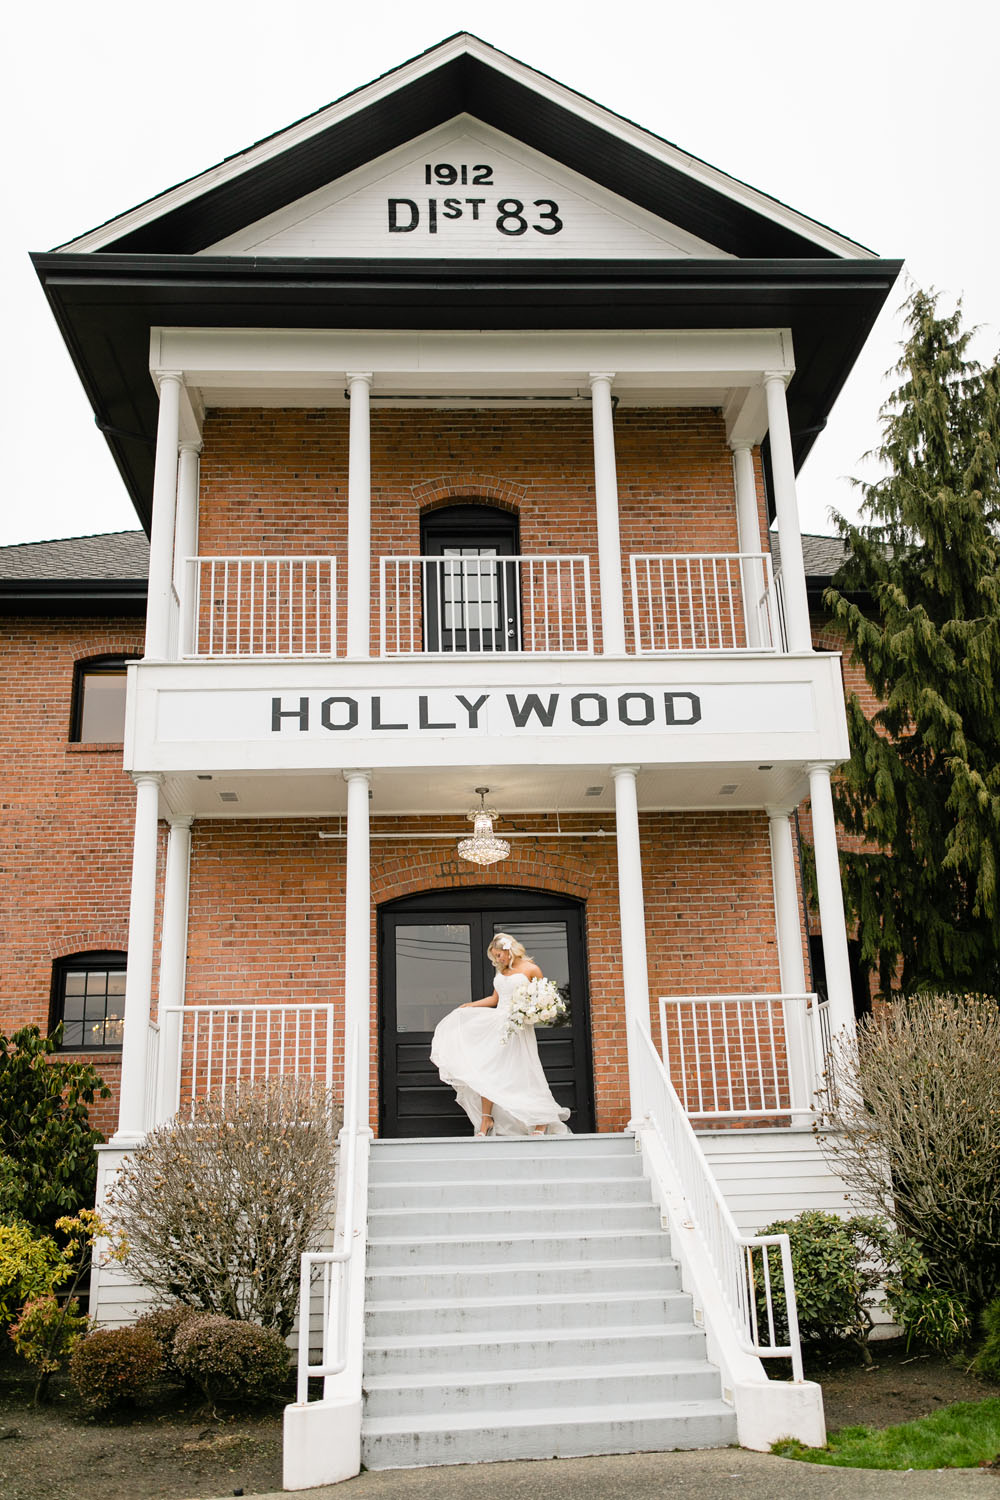 Photobooth Maison Hollywood Schoolhouse 2019 Weddings In Woodinville